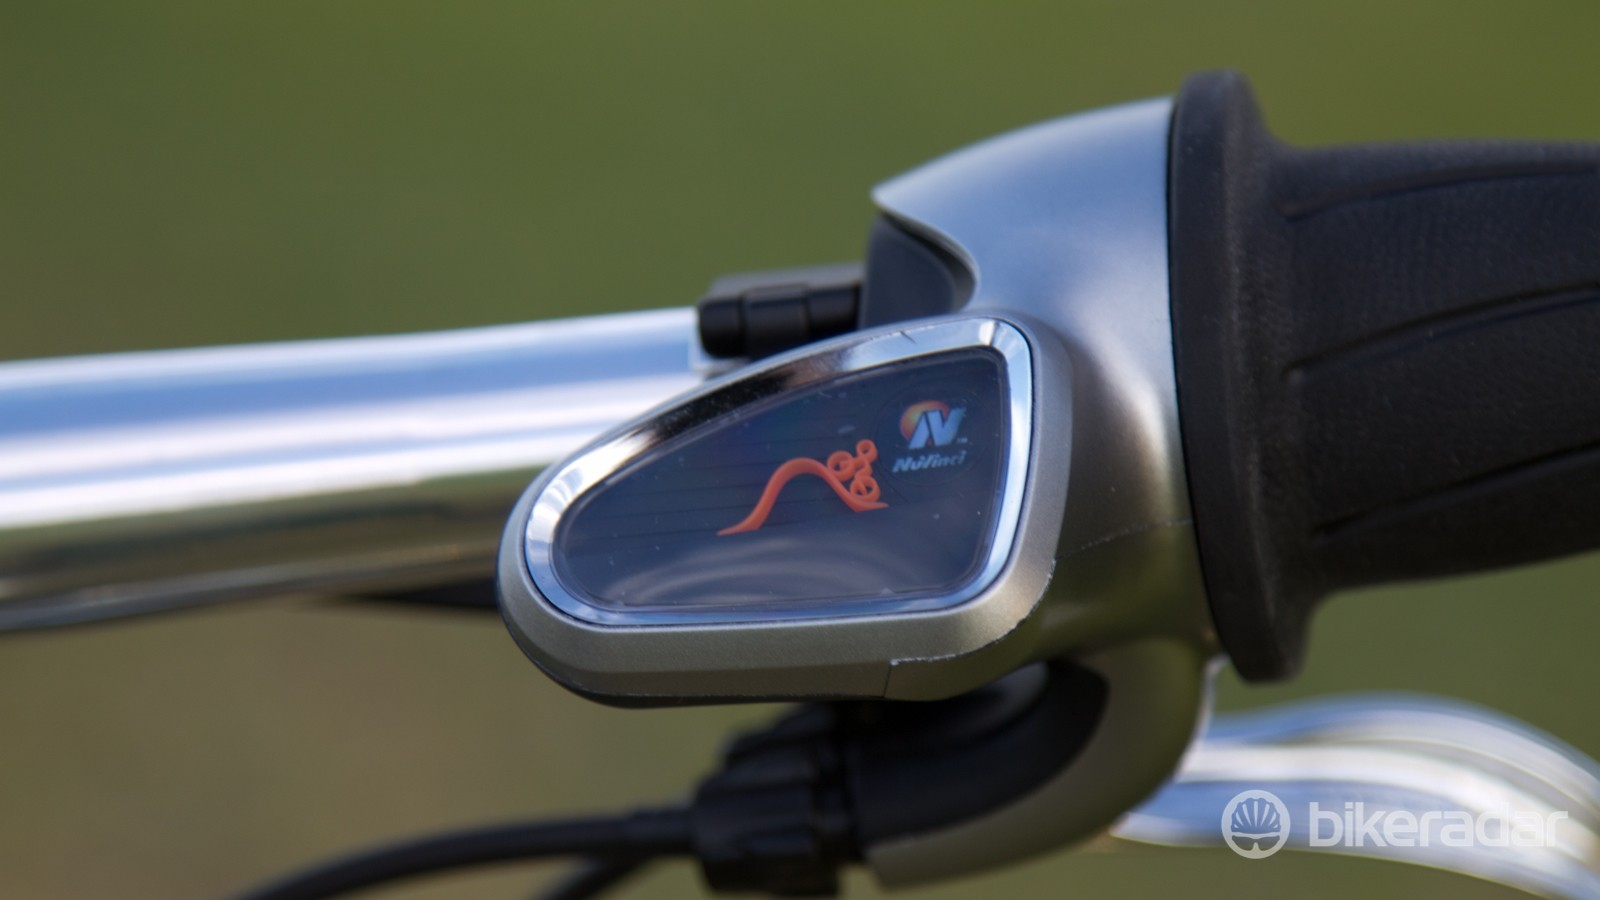 ...as the indicator shows, the bike is now in its easiest gearing for steep inclines